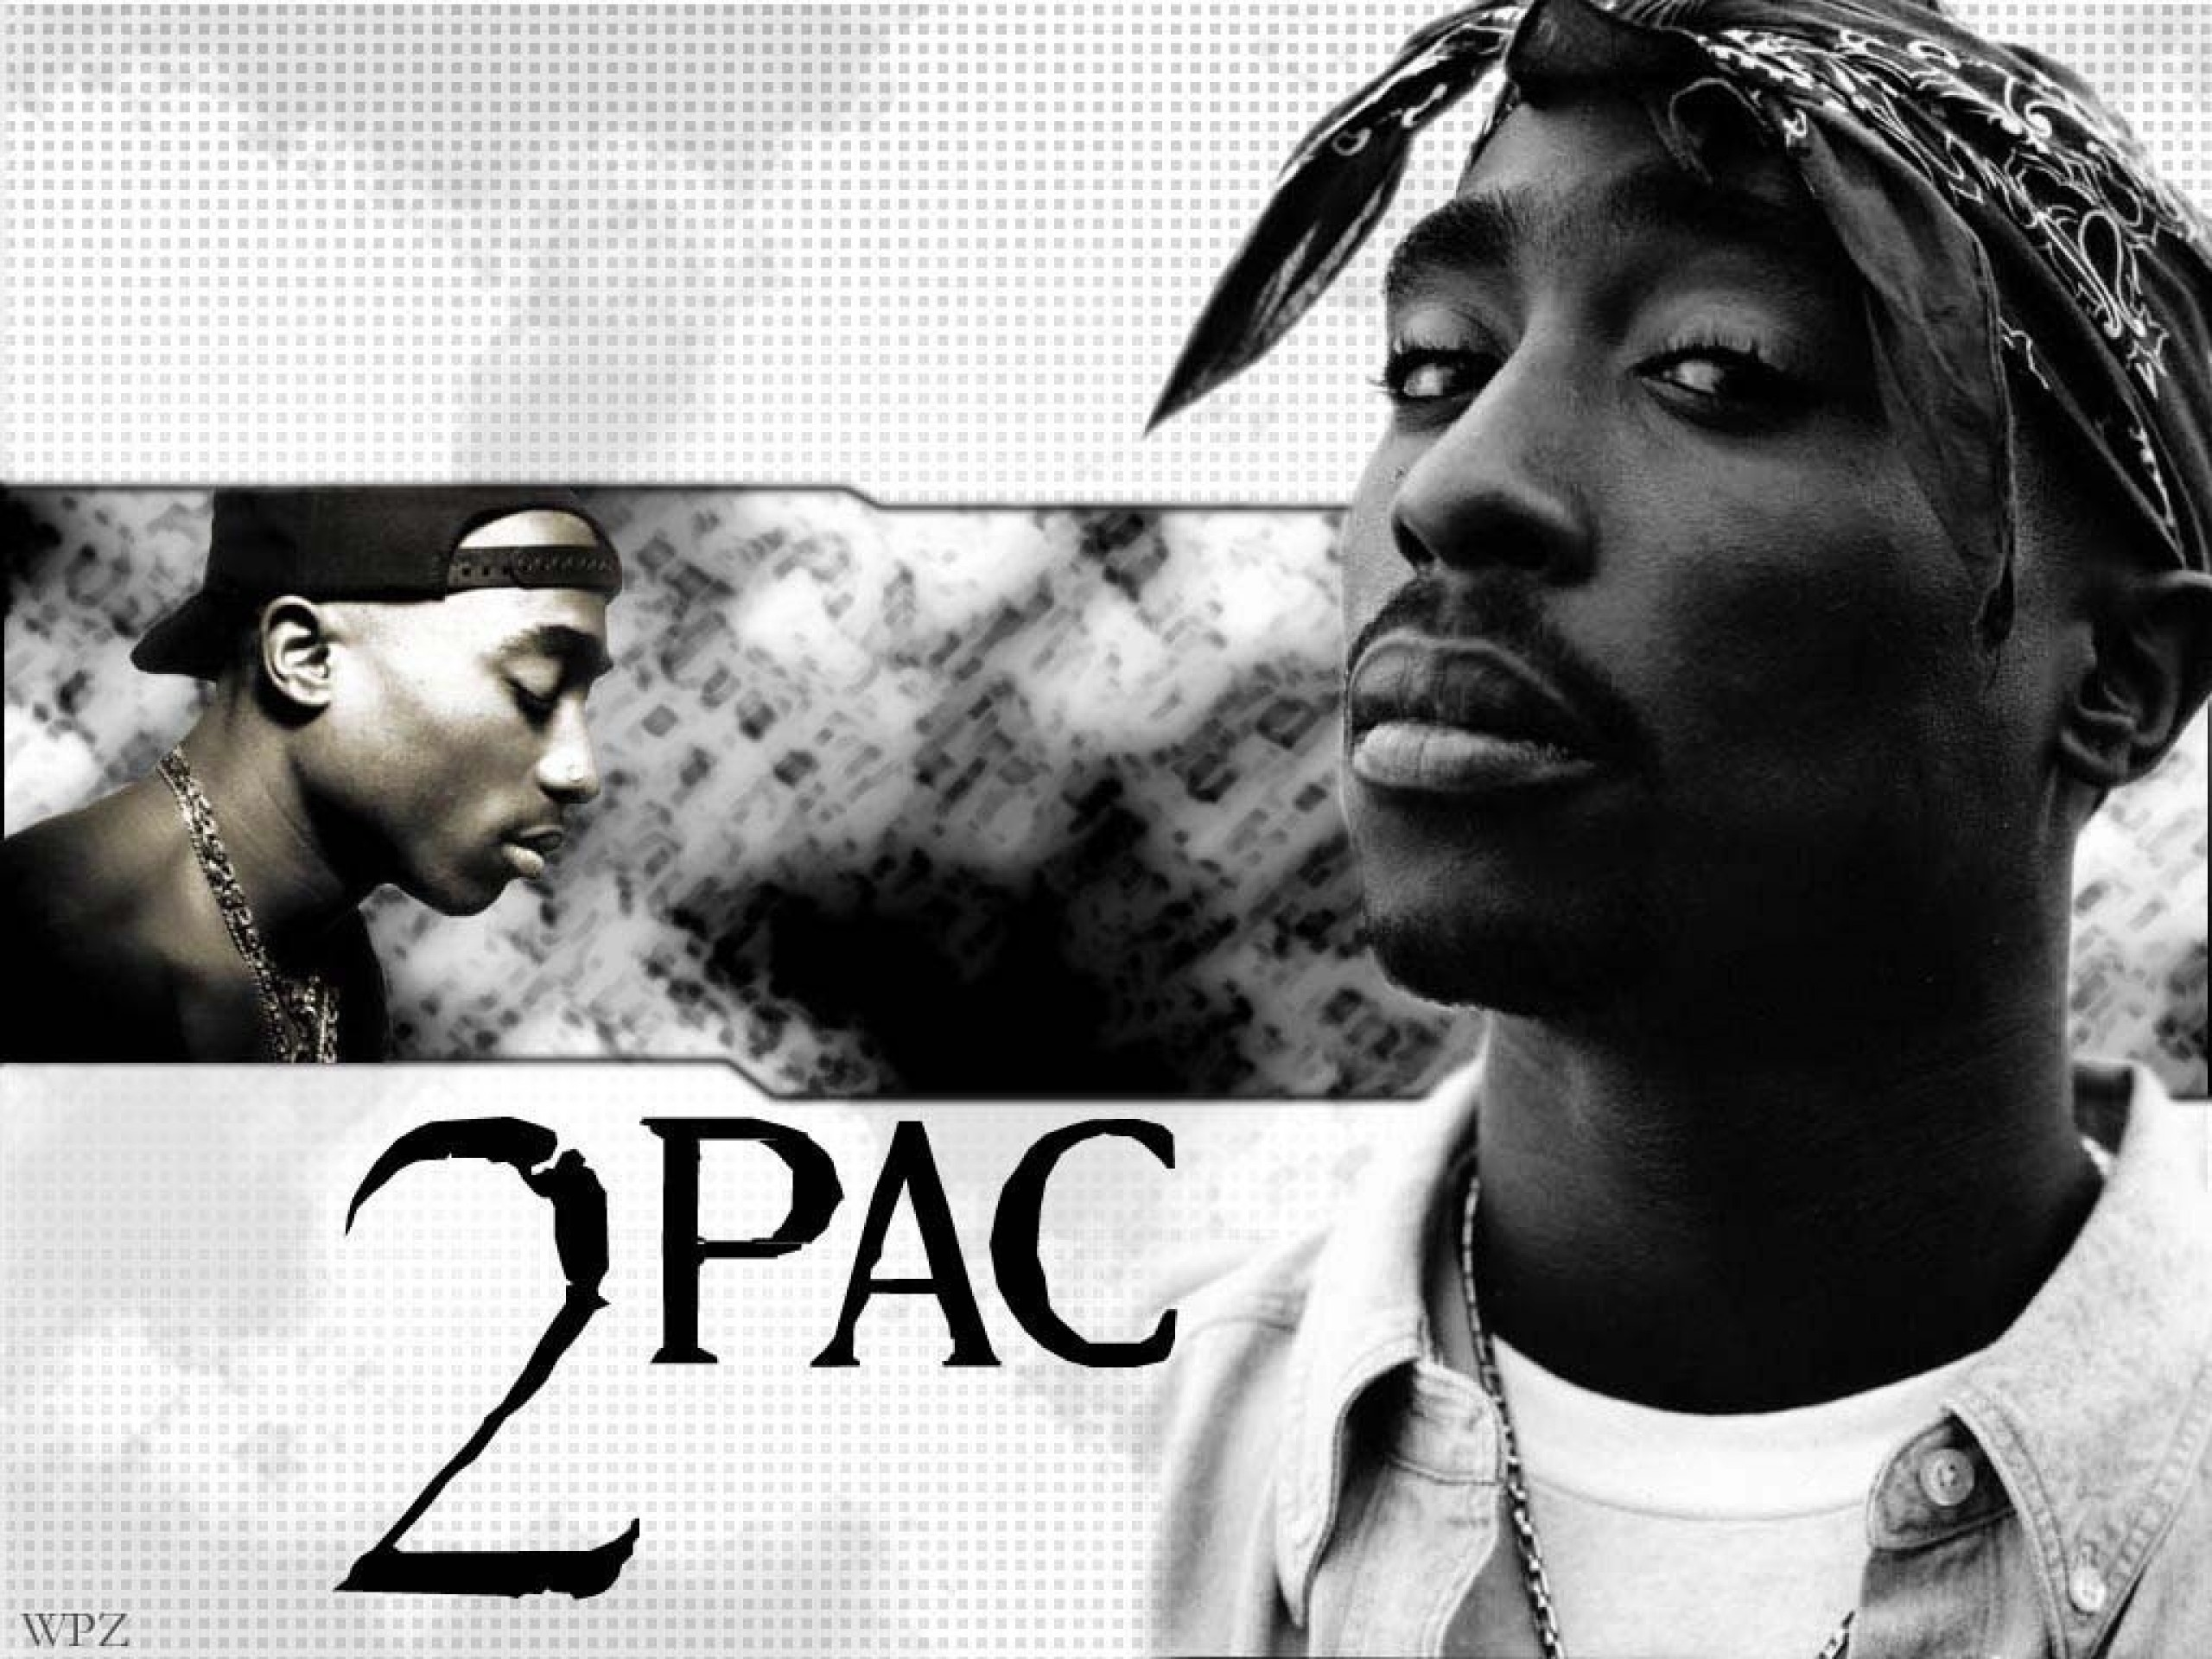 1920x1080 36 2Pac HD Wallpapers | Backgrounds - Wallpaper Abyss .